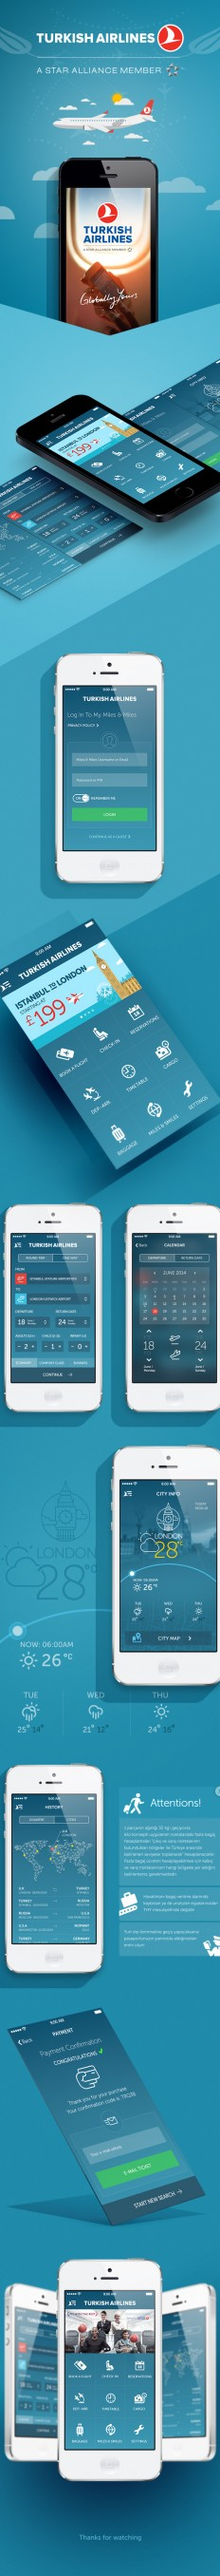 Turkish Airlines App Redesign Concept on